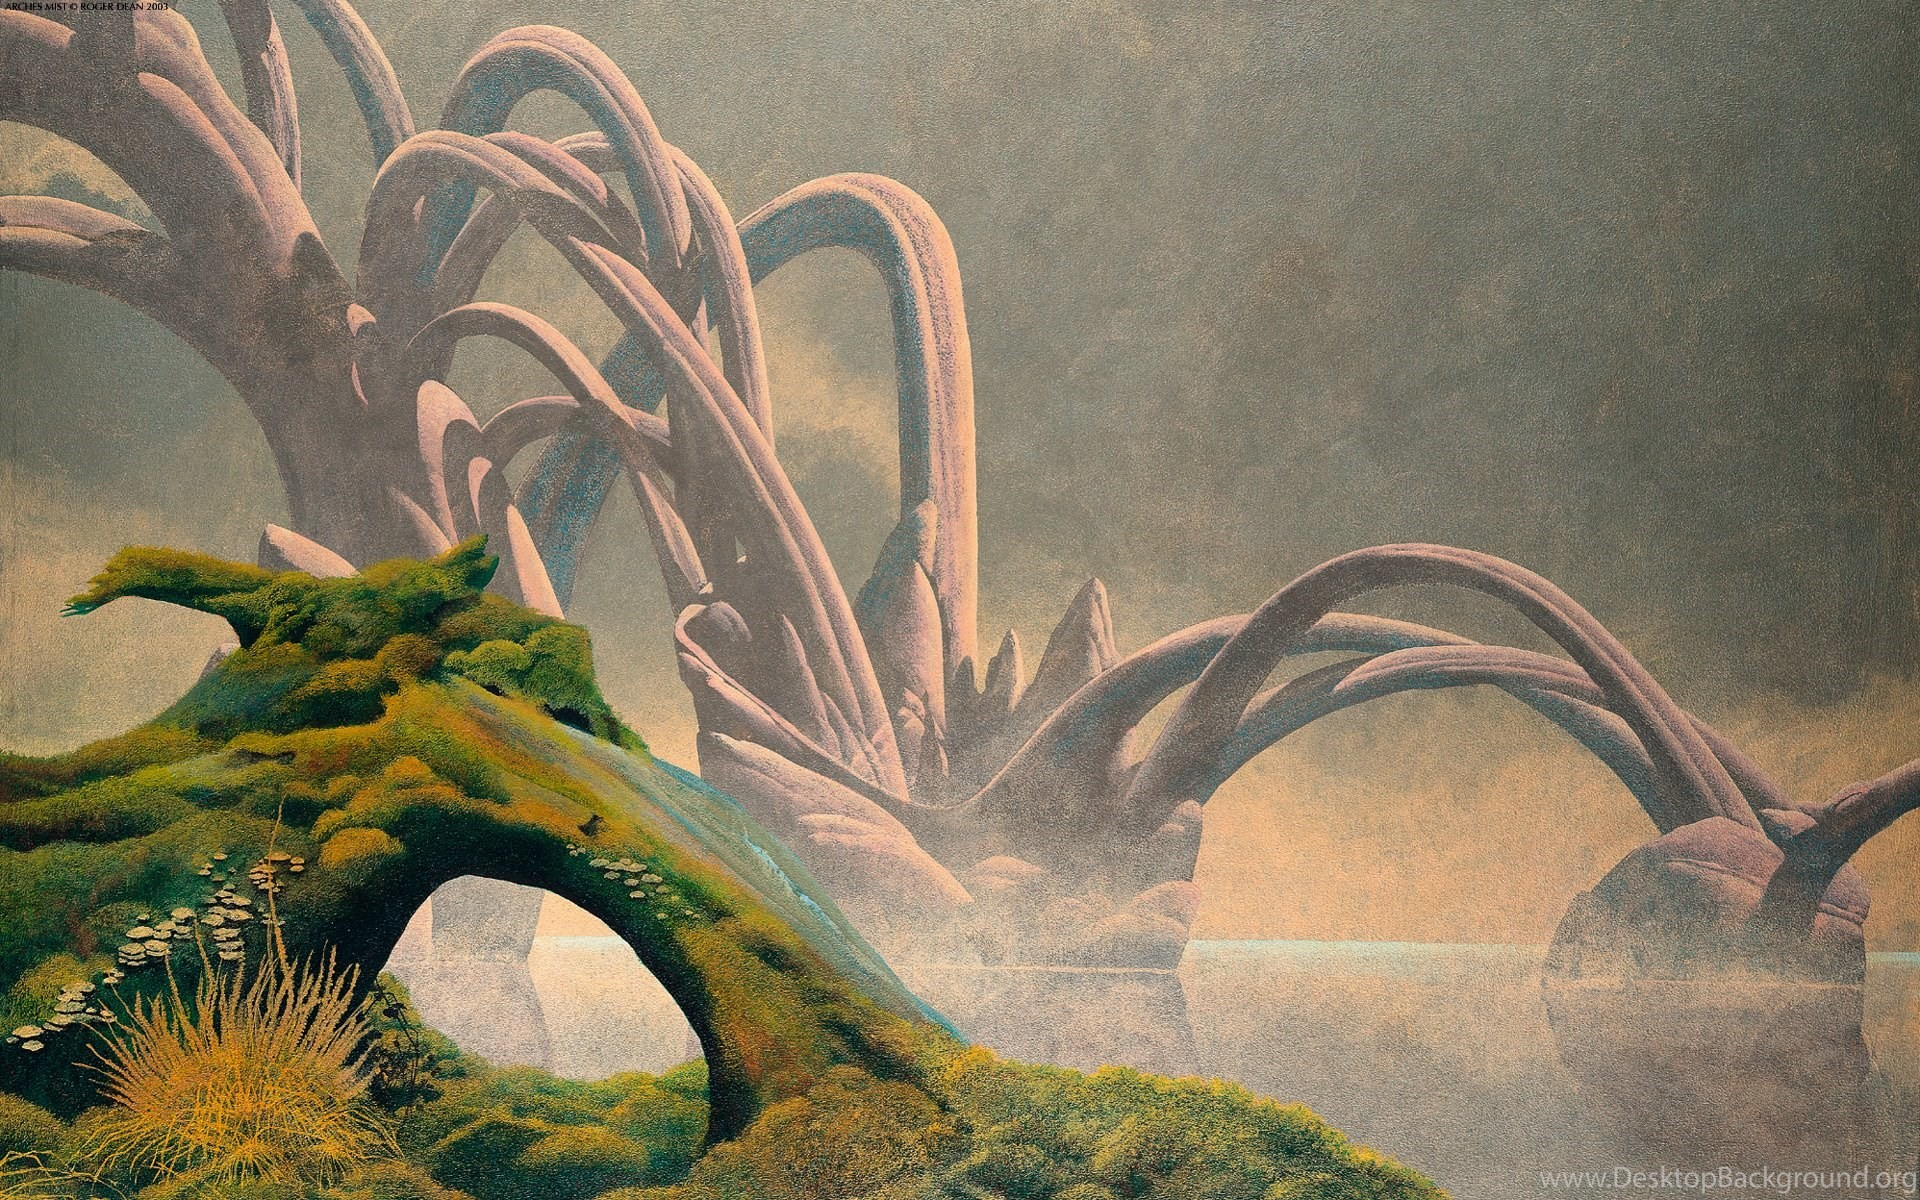 1920x1200 Roger Dean Wallpapers